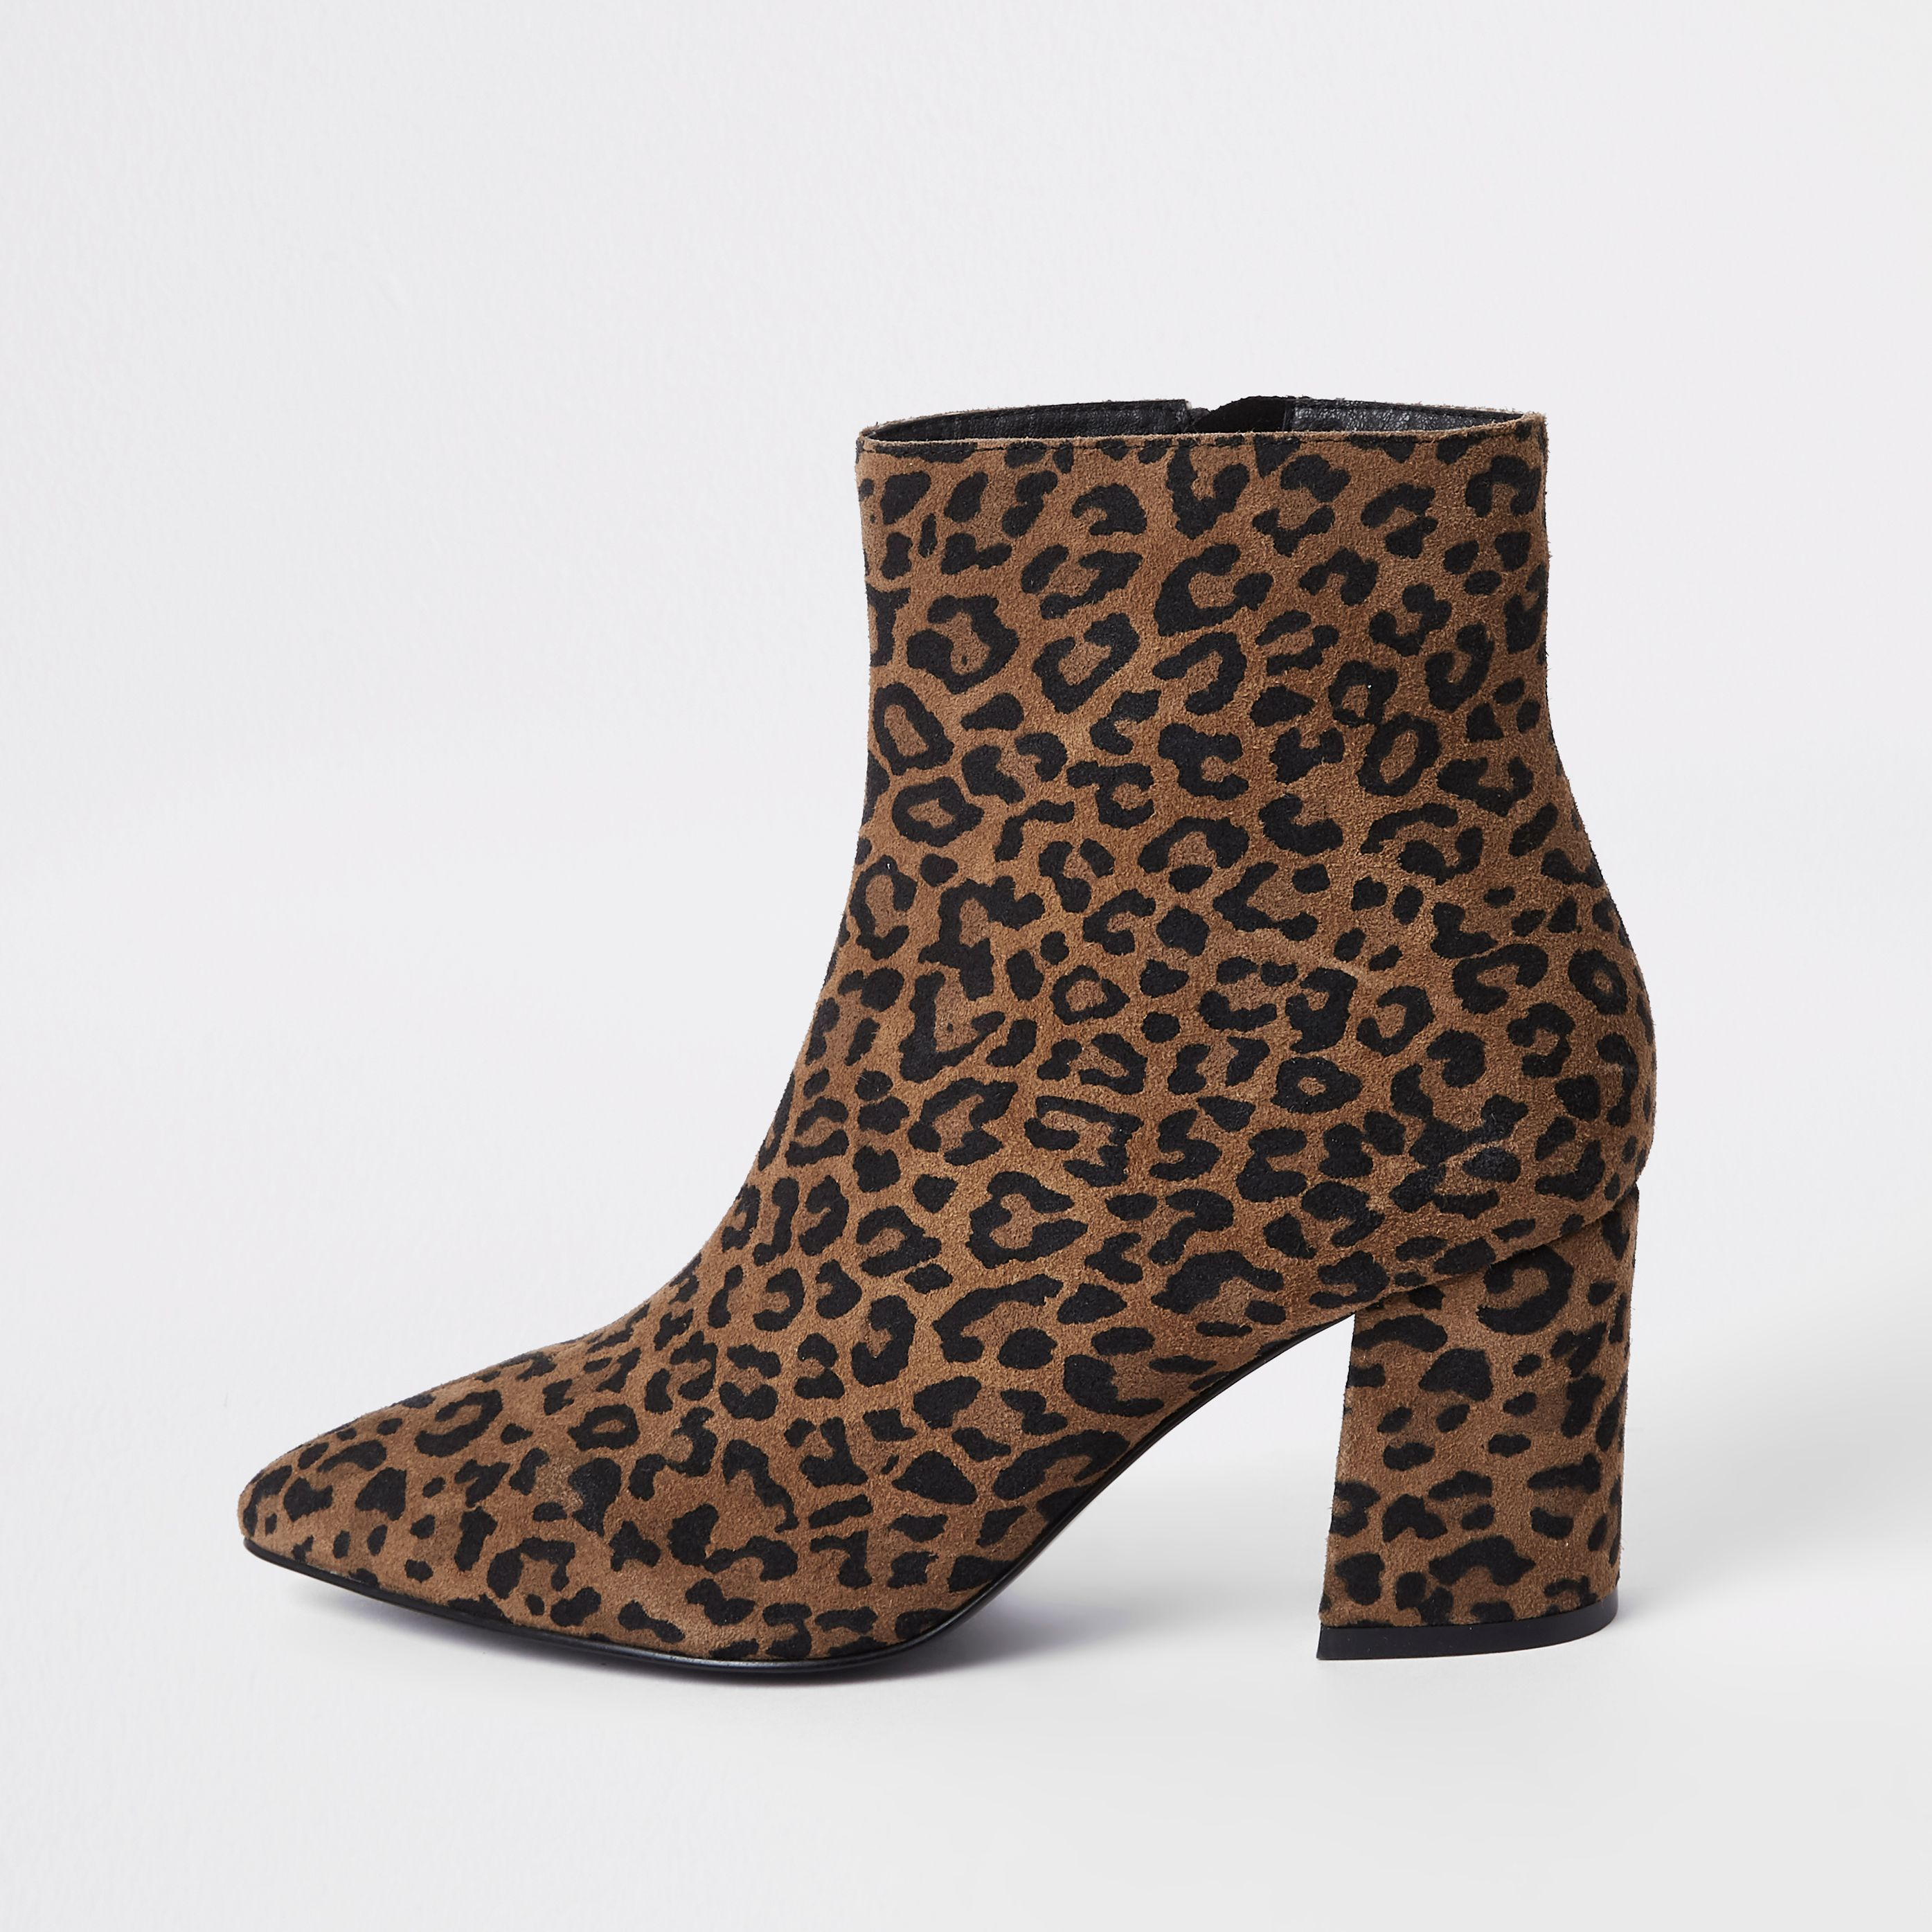 ankle boots | Leopard print ankle boots